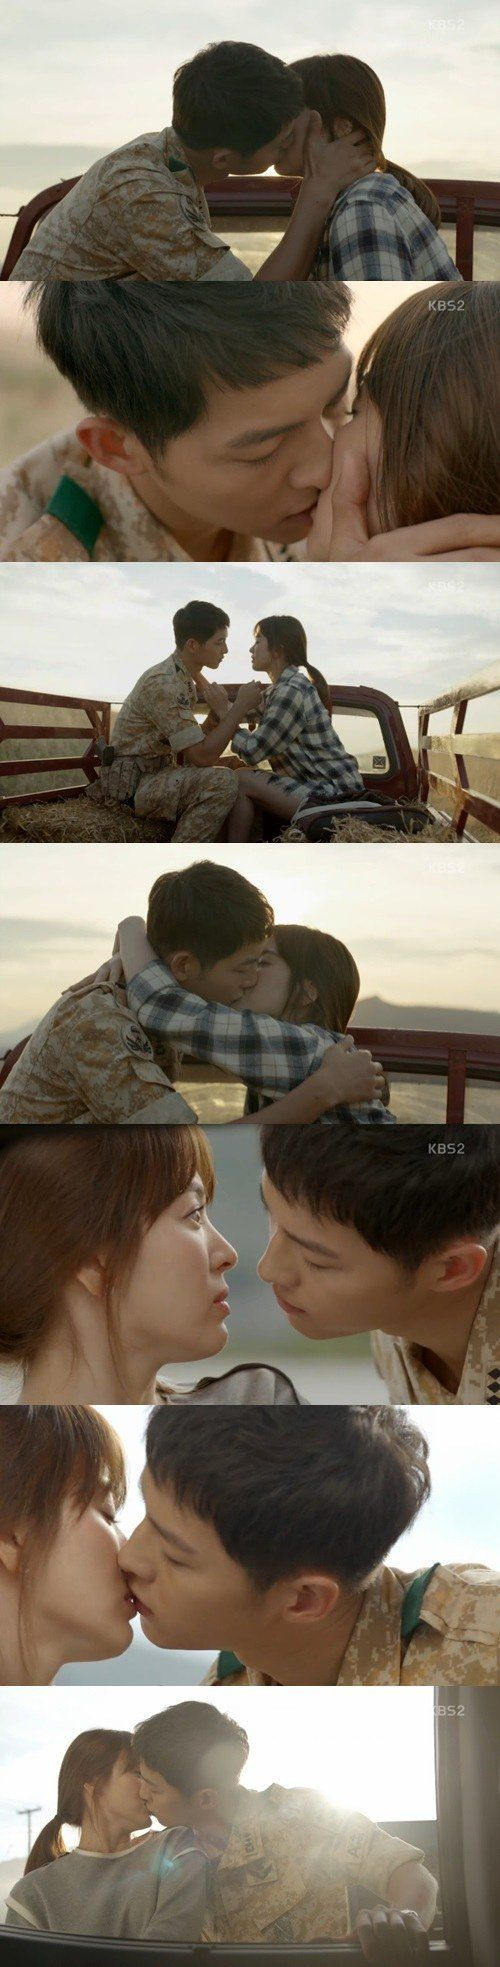 """Descendants of the Sun"" Song Hye-kyo and Song Joong-ki kiss and percentage finally reaches 30%"